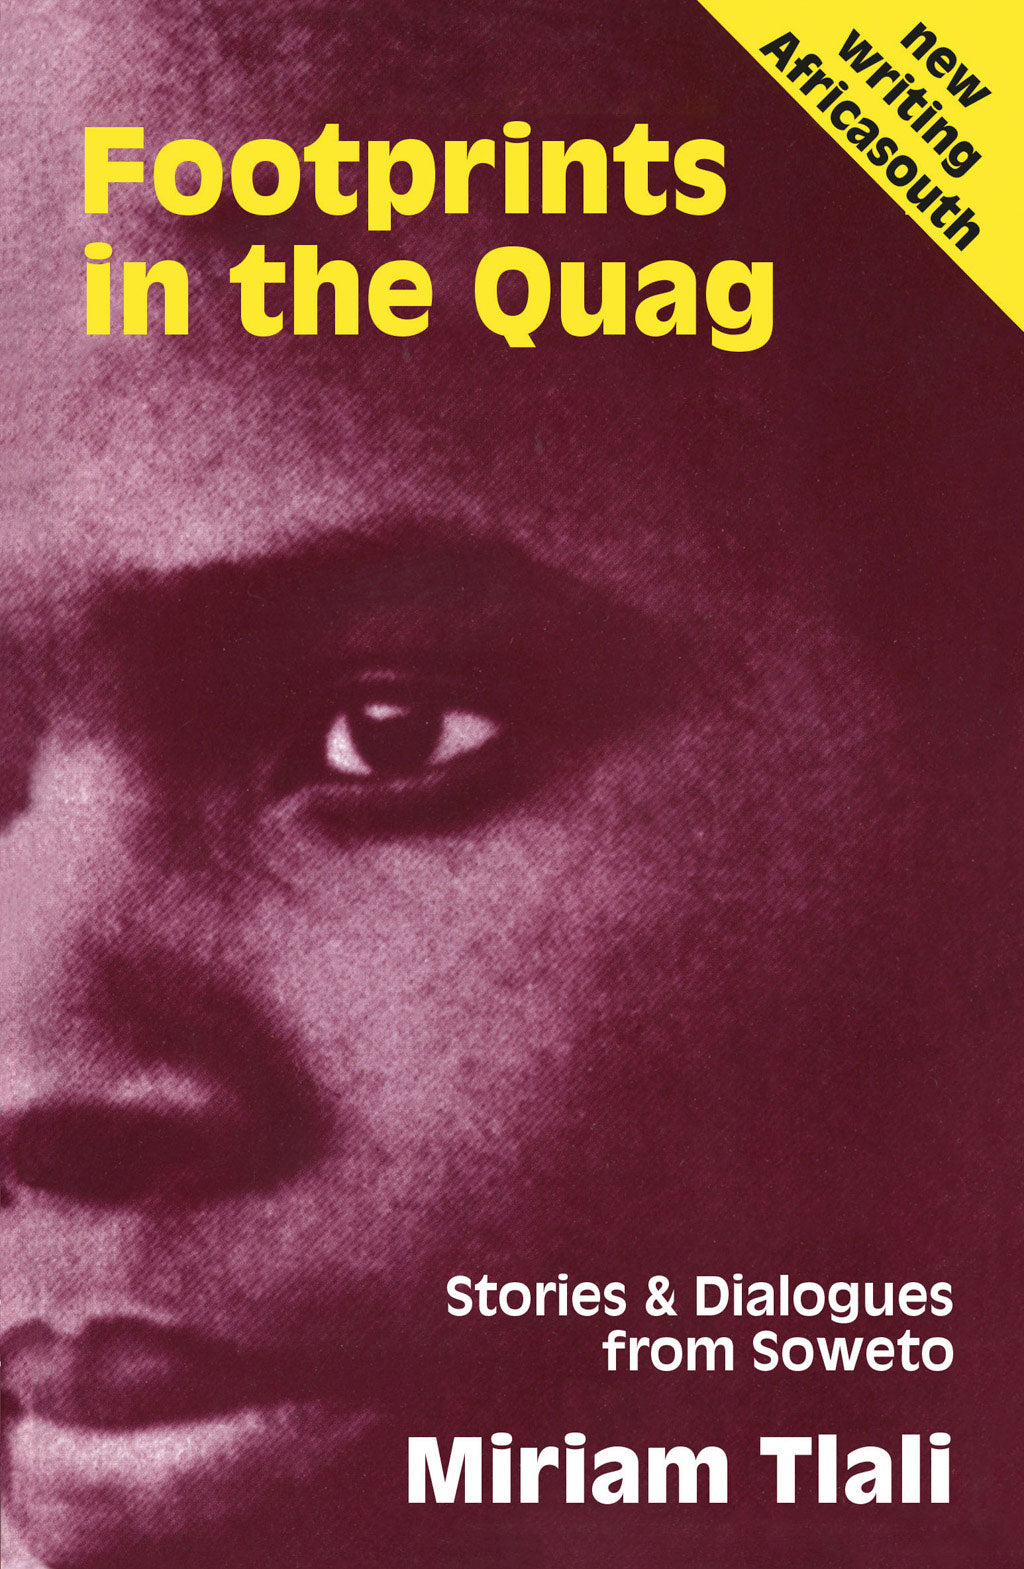 FOOTPRINTS IN THE QUAG: Stories and Dialogues from Soweto